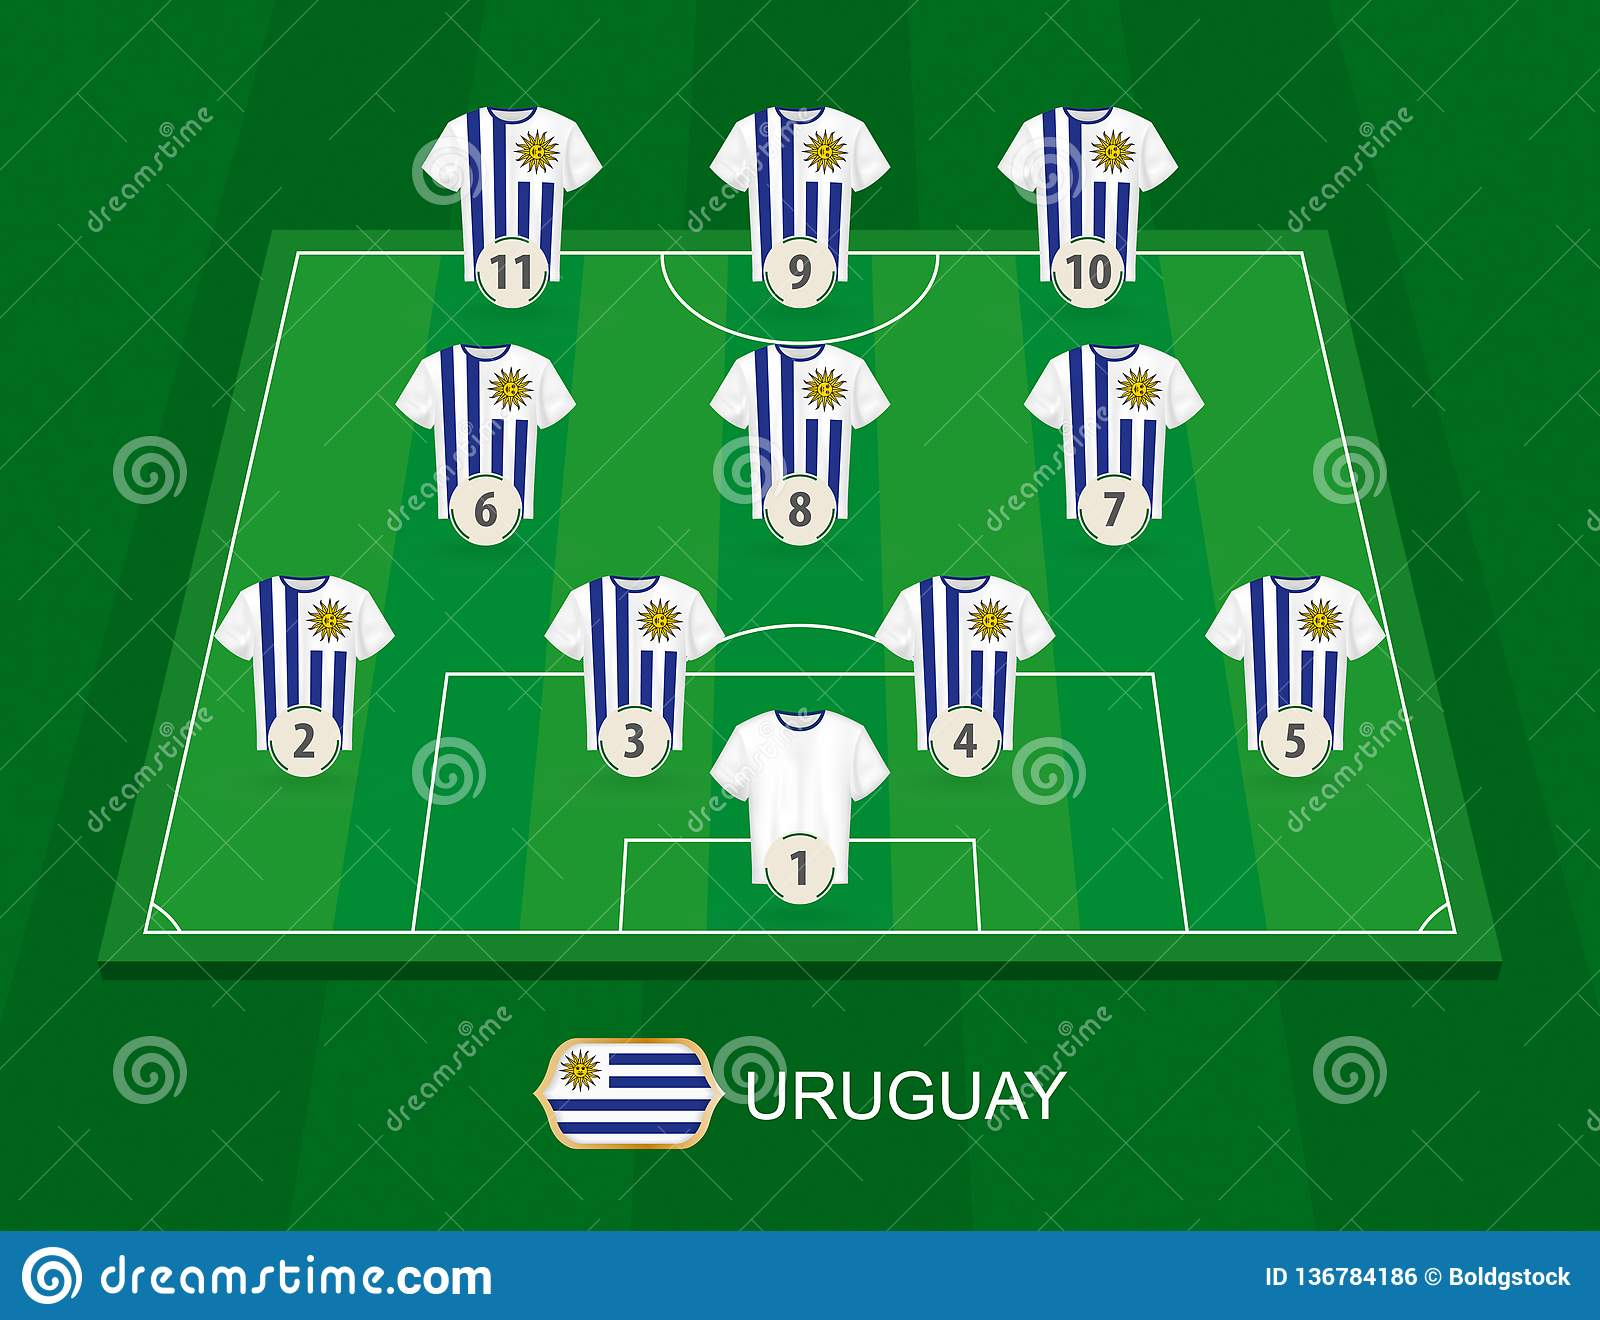 e8ec4077324 Soccer field with the Uruguay national team players. Lineups formation  4-3-3 on half football field. More similar stock illustrations